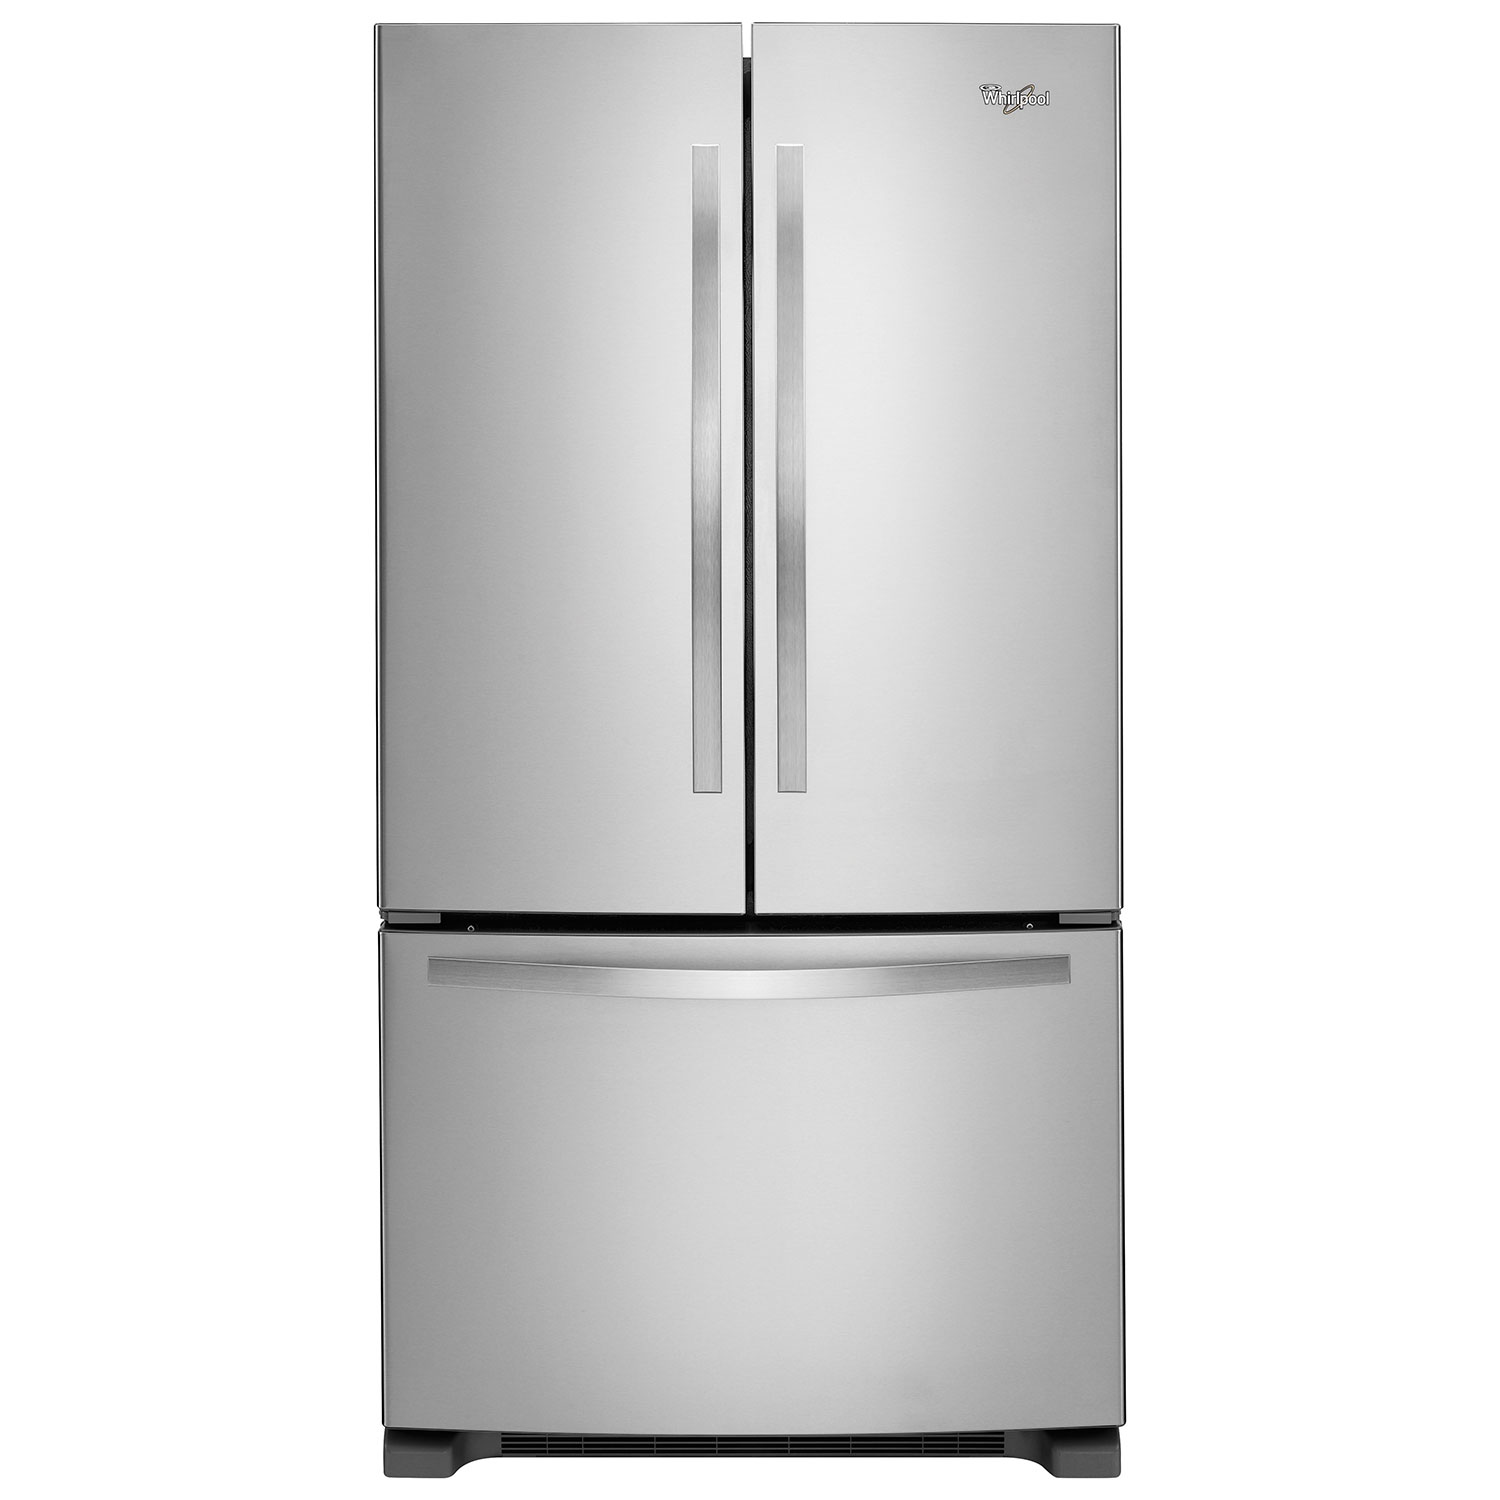 Whirlpool white ice microwave canada - Whirlpool 33 22 1 Cu Ft French Door Refrigerator With Led Lighting Stainless Steel French Door Refrigerators Best Buy Canada